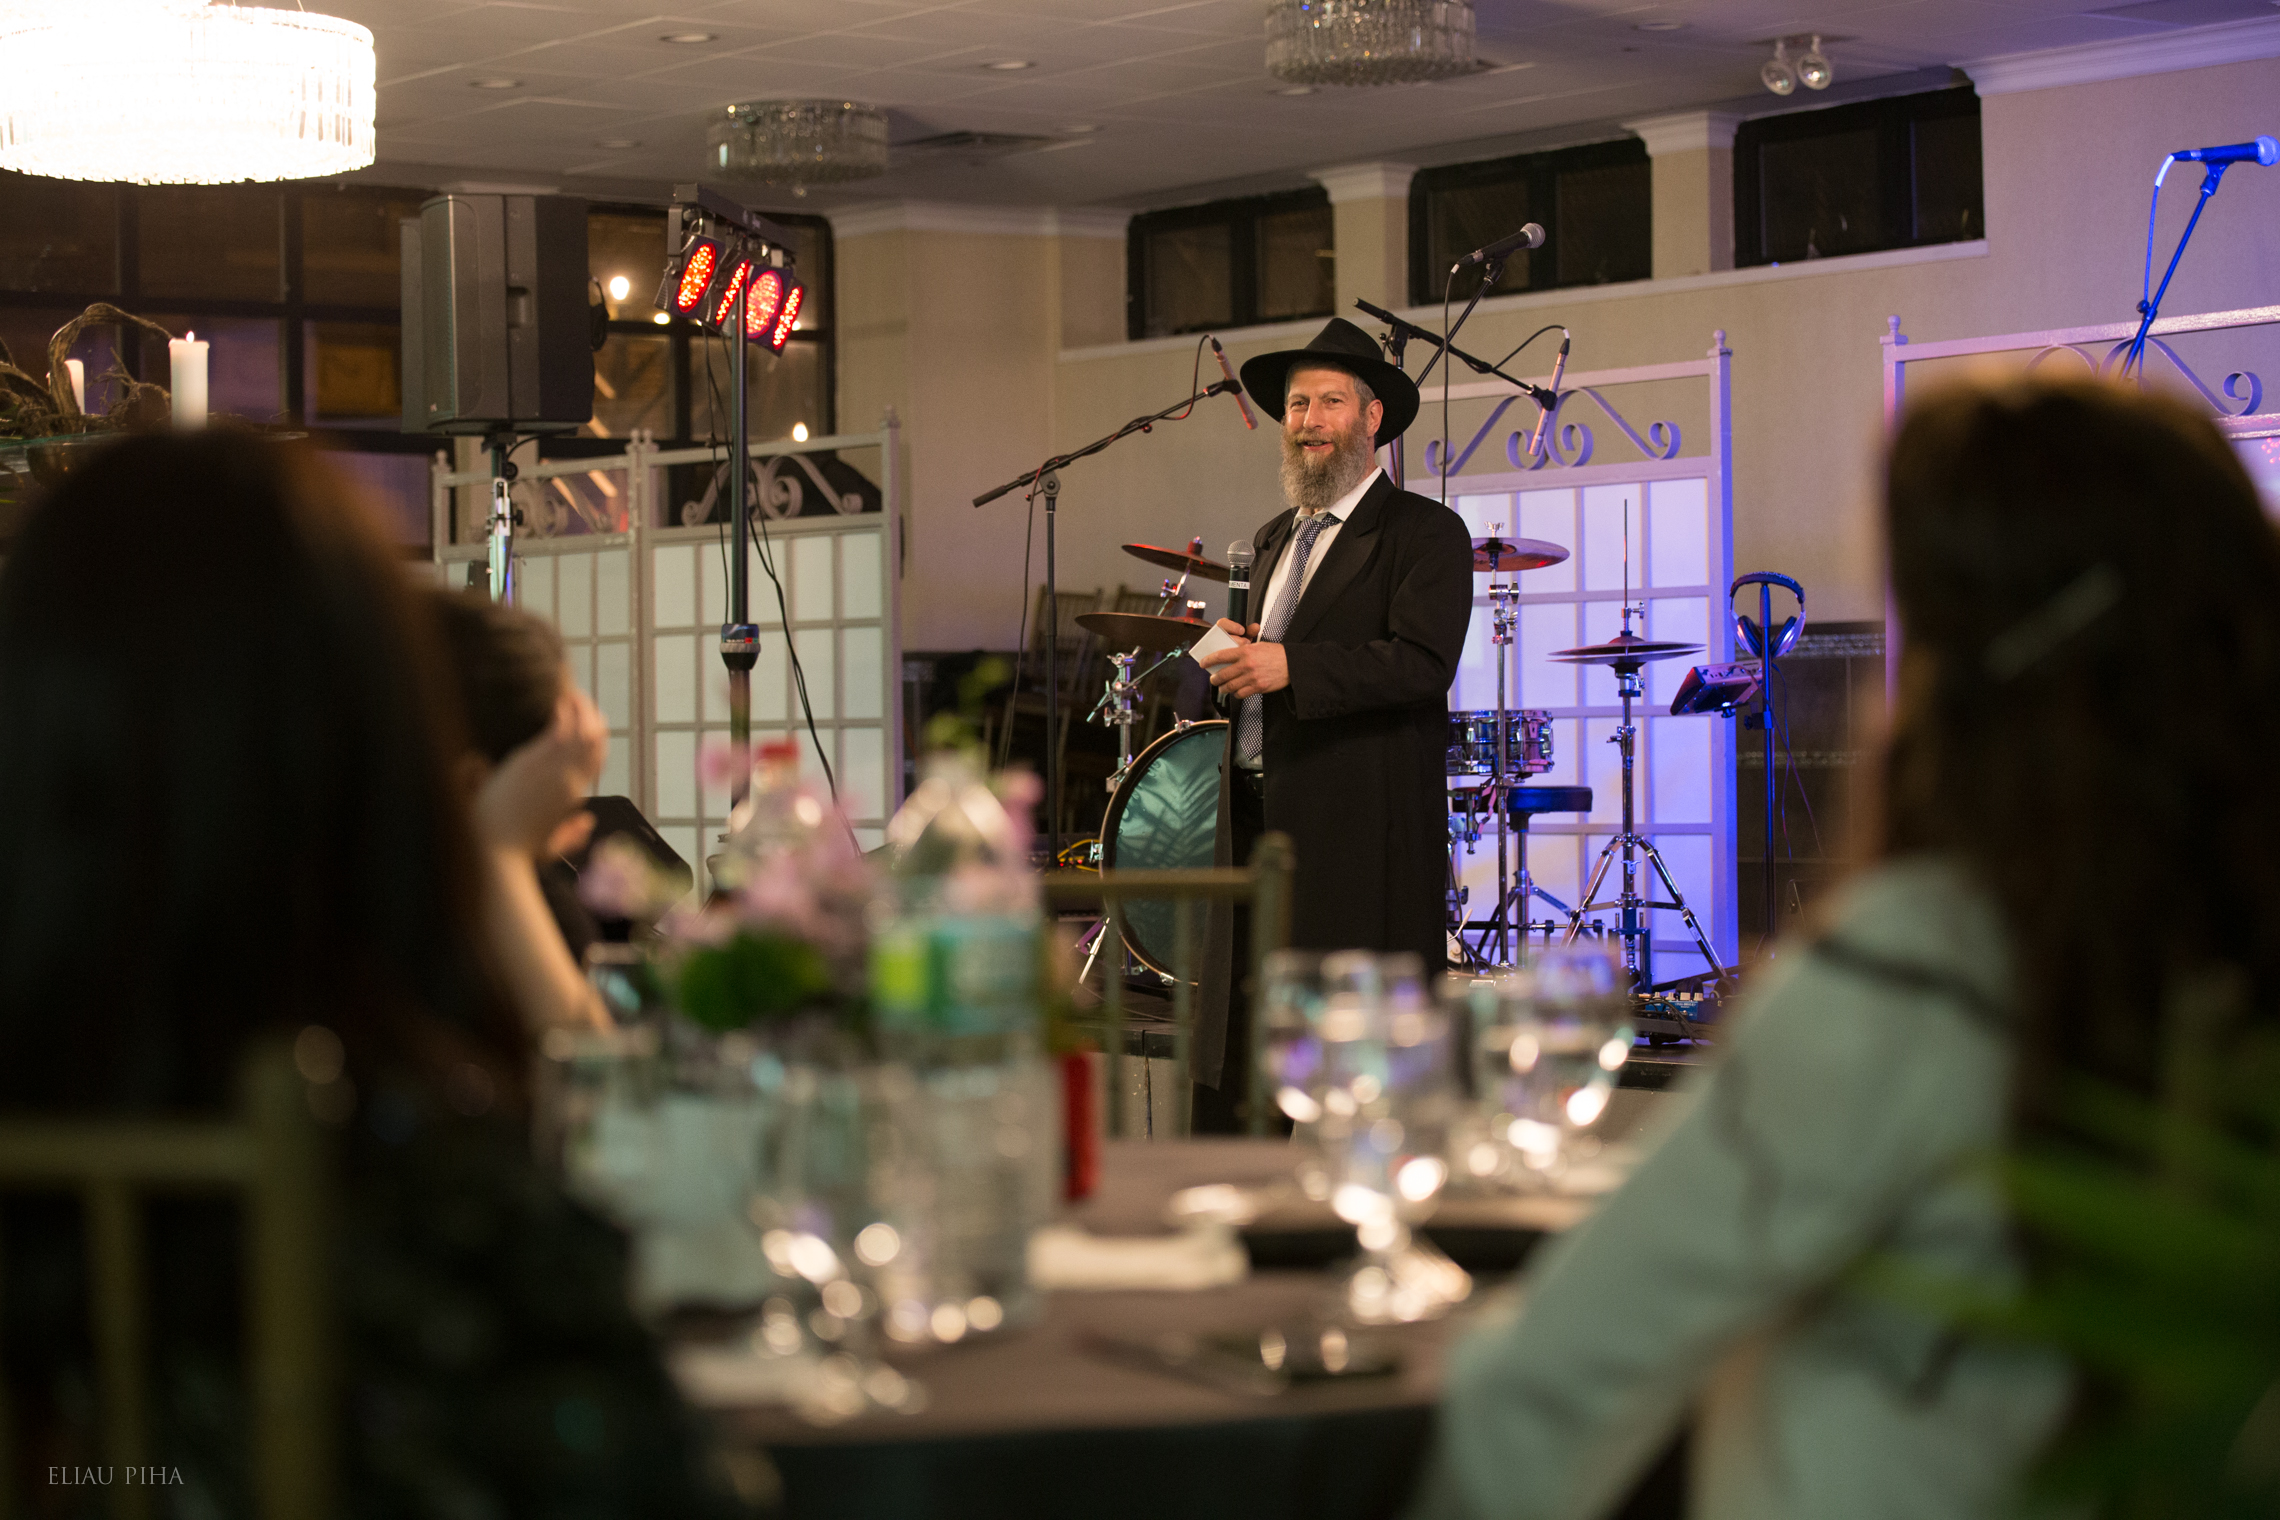 Bar-Mitzvah Levi Meer | Piha studio photography, new york, events, -7.jpg-18.jpg